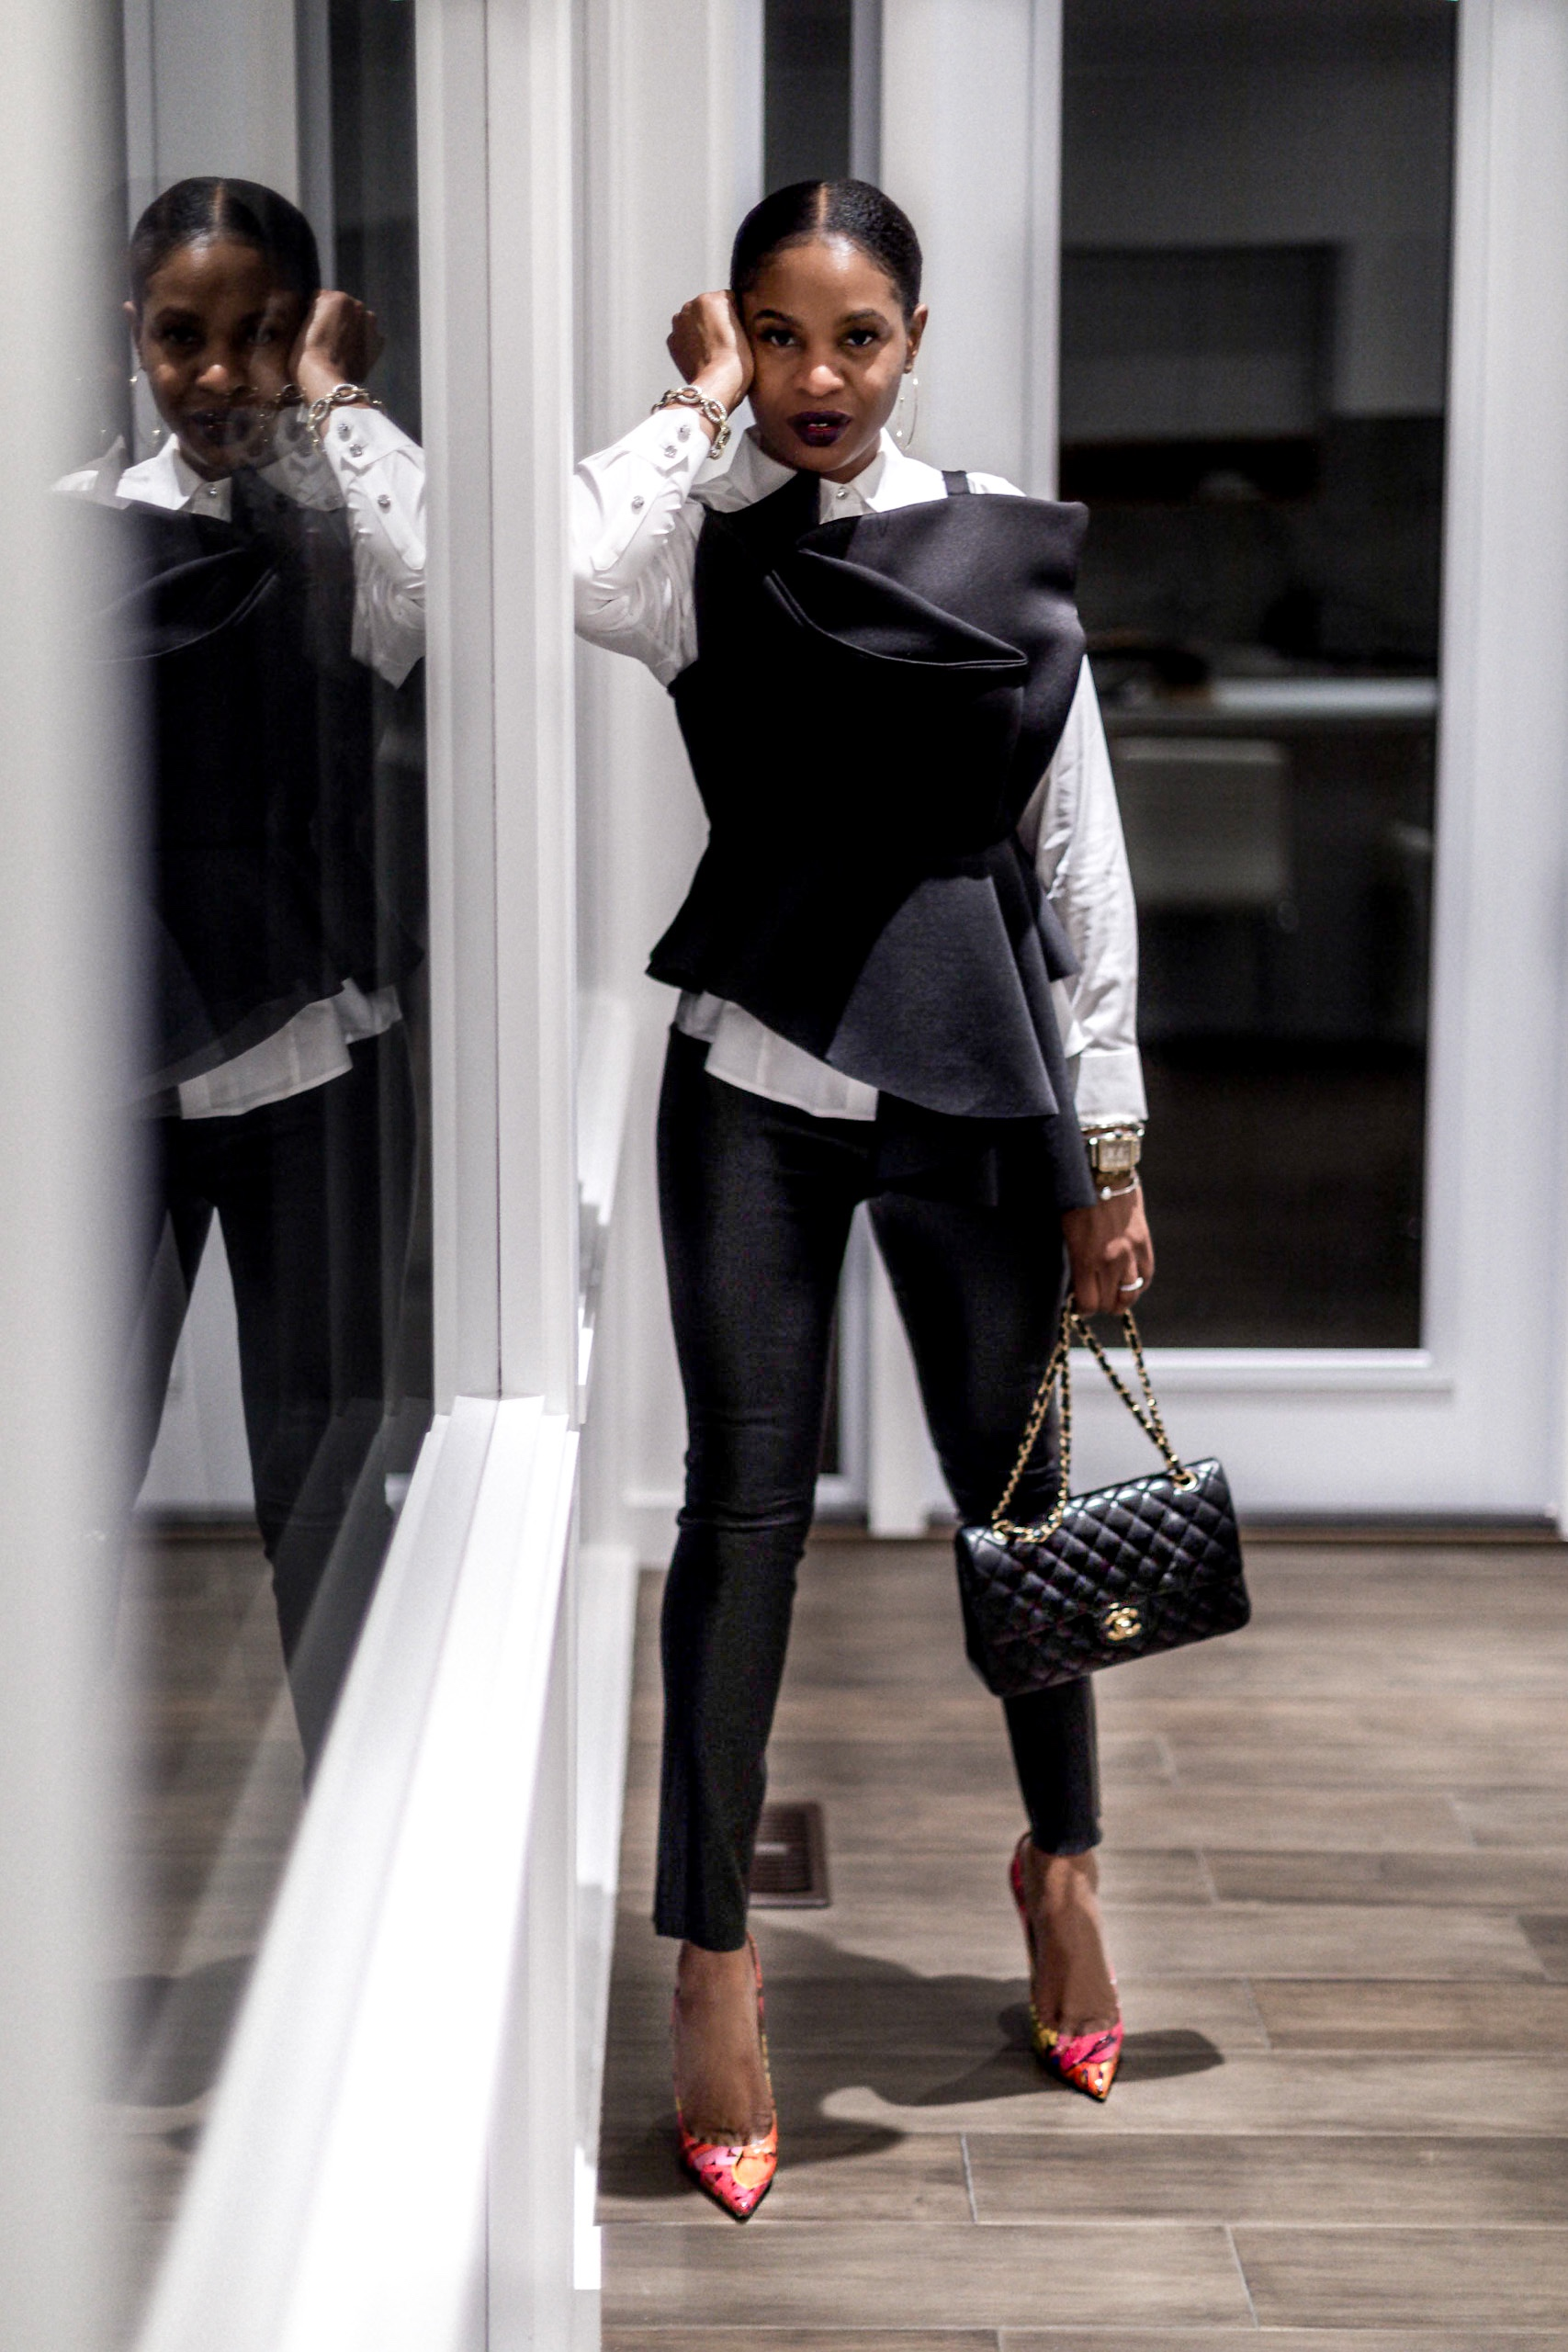 atlanta fashion blogger wearing white shirt with black scuba top and leather pants, what to wear to work, how to look stylish for work, how to look chic to work, how to elevate your work wardrobe, work attire, chic work outfits, christian loubutins, wearing christian louboutins to work, chanel bag, chanel work bag, black and white outfit ideas, how to look chic in black and white, top blogger, social media influencer, top social media influencer, top atlanta blogger, how to style, styling tips, style inspiration, outfit of the day